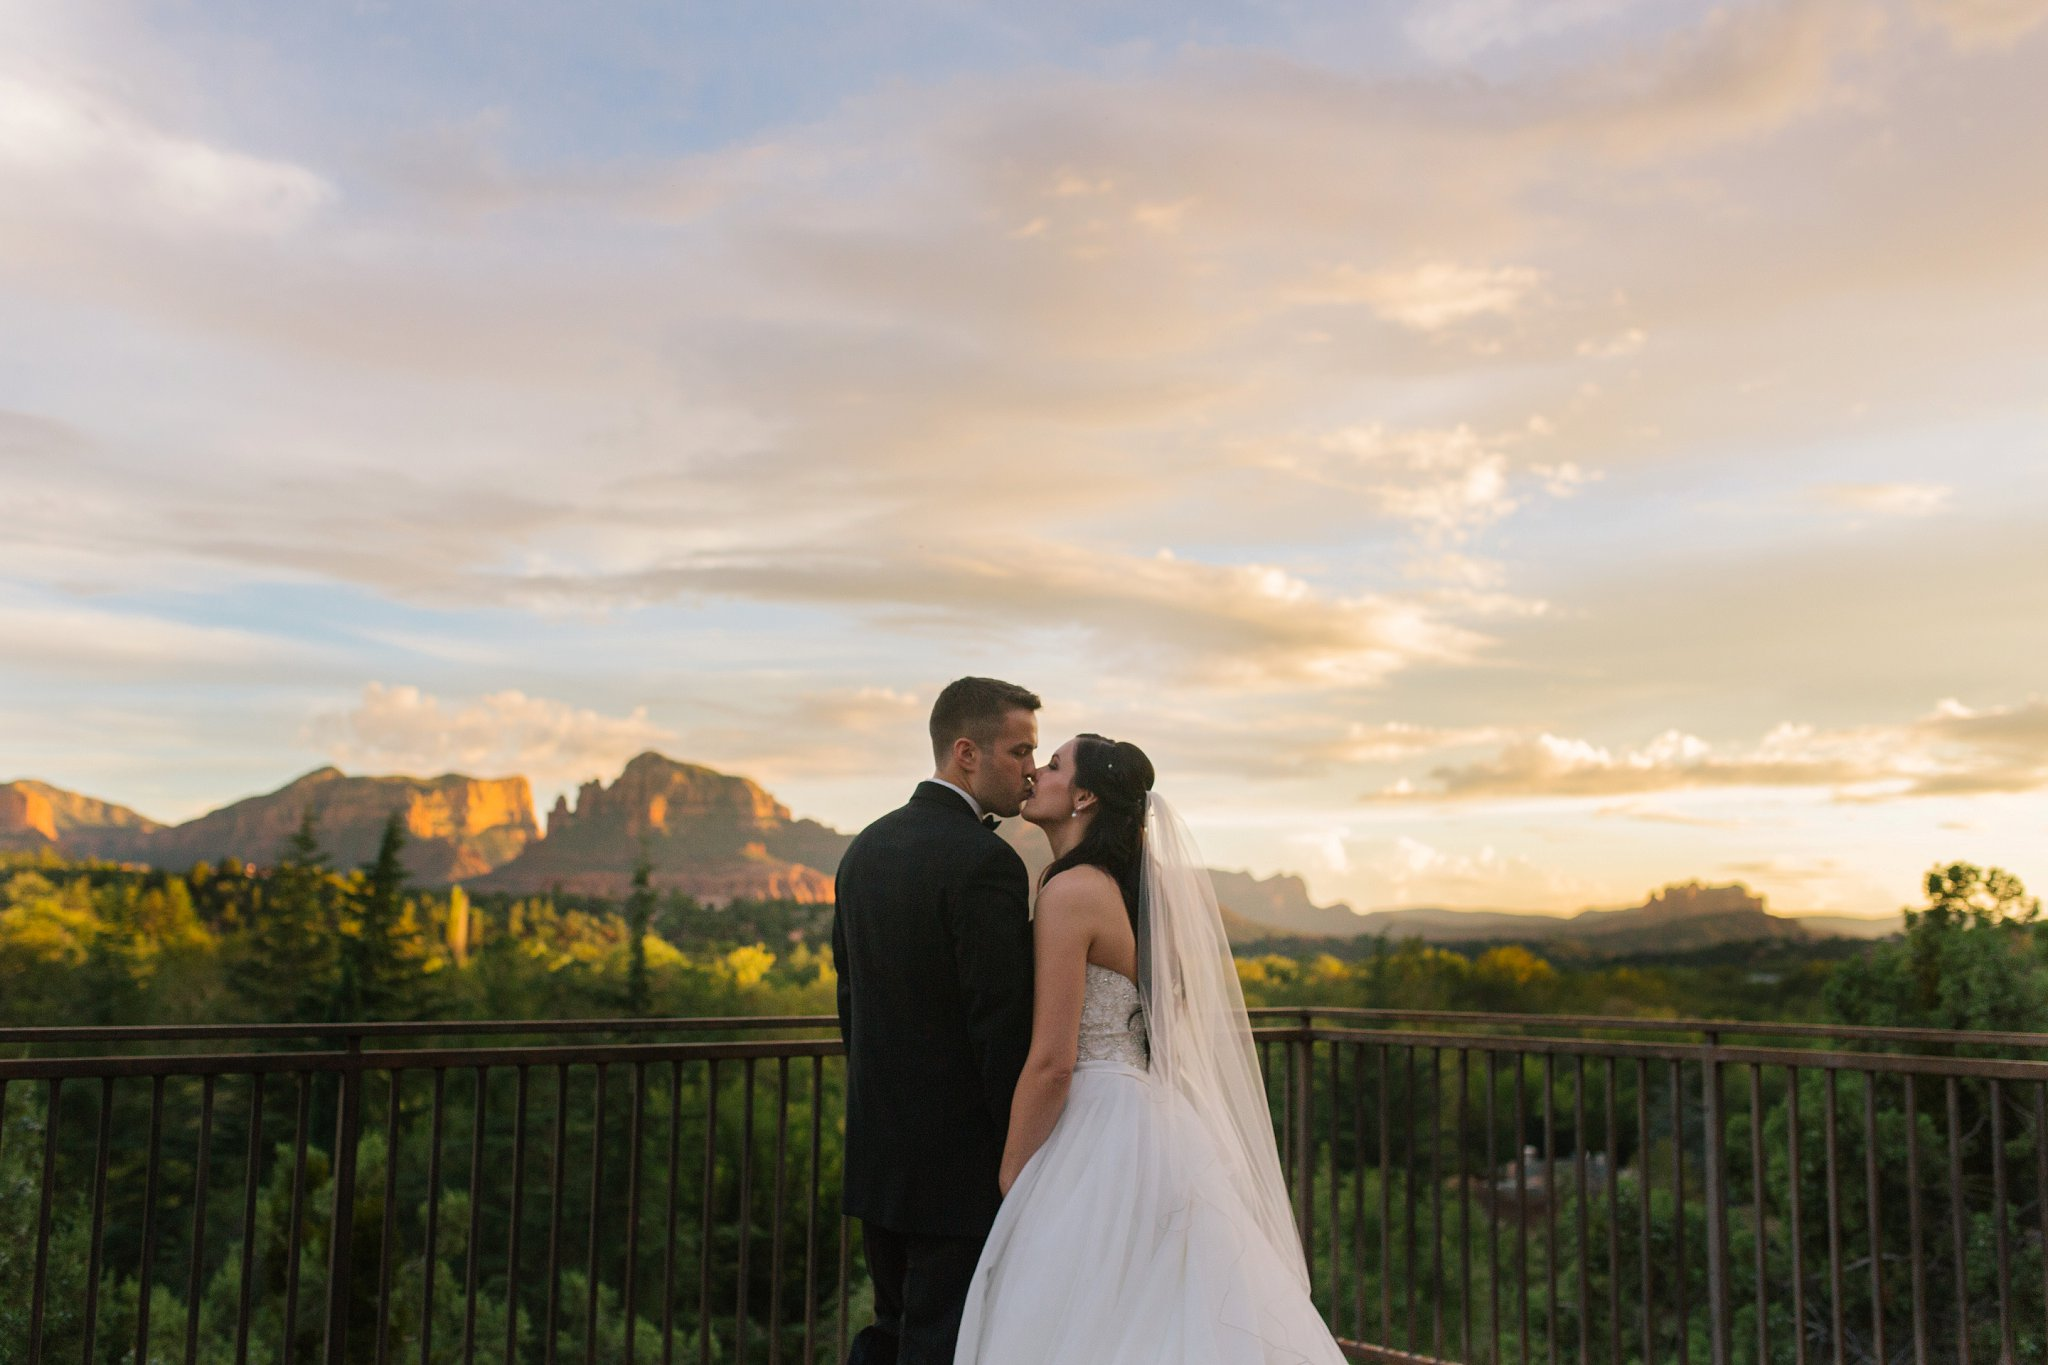 bride & groom married in Sedona at sunset